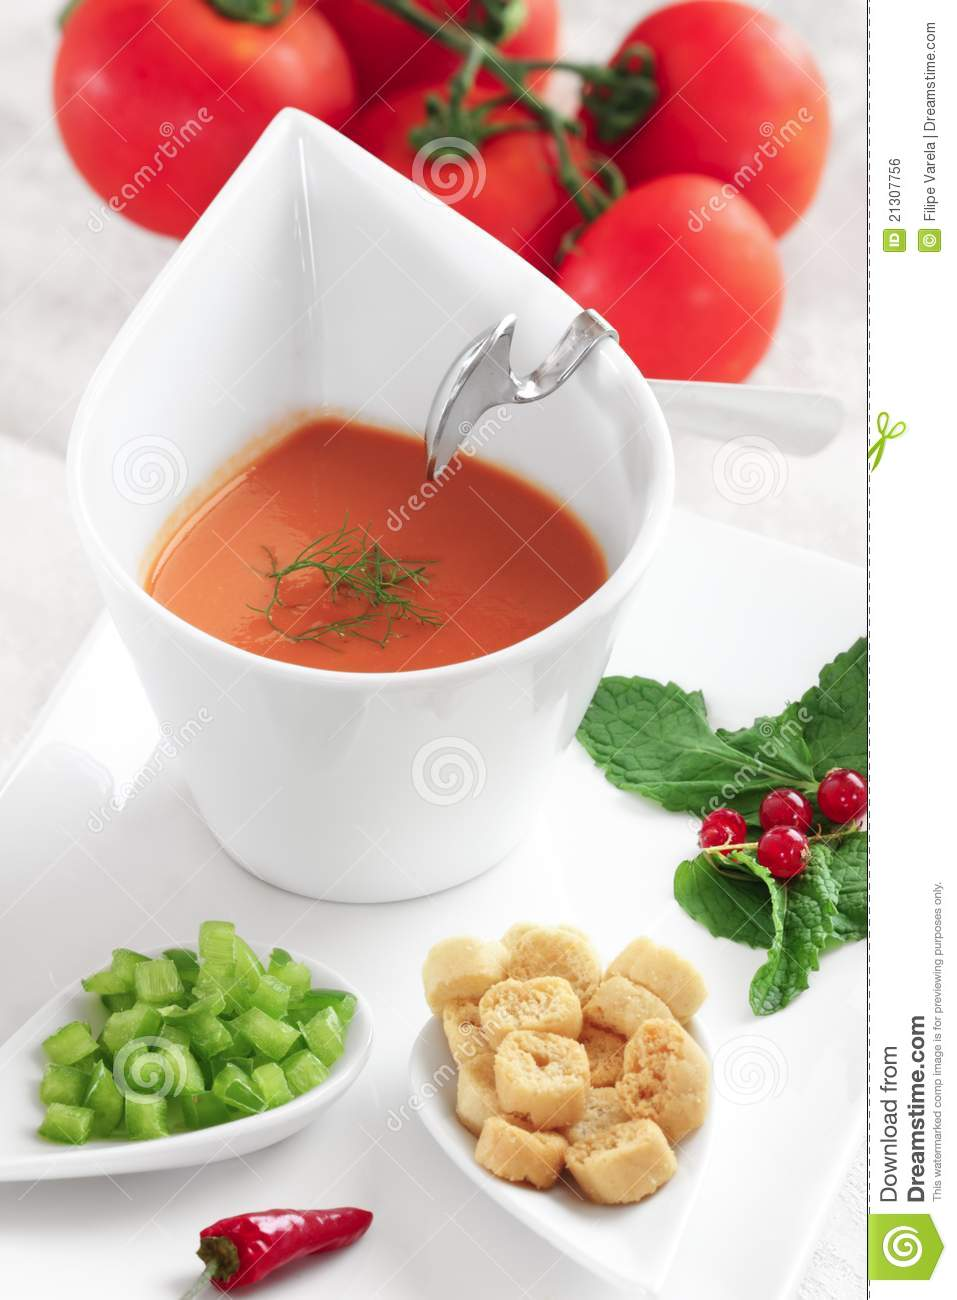 Portuguese Traditional Cold Tomato Soup-gazpacho Royalty Free Stock ...